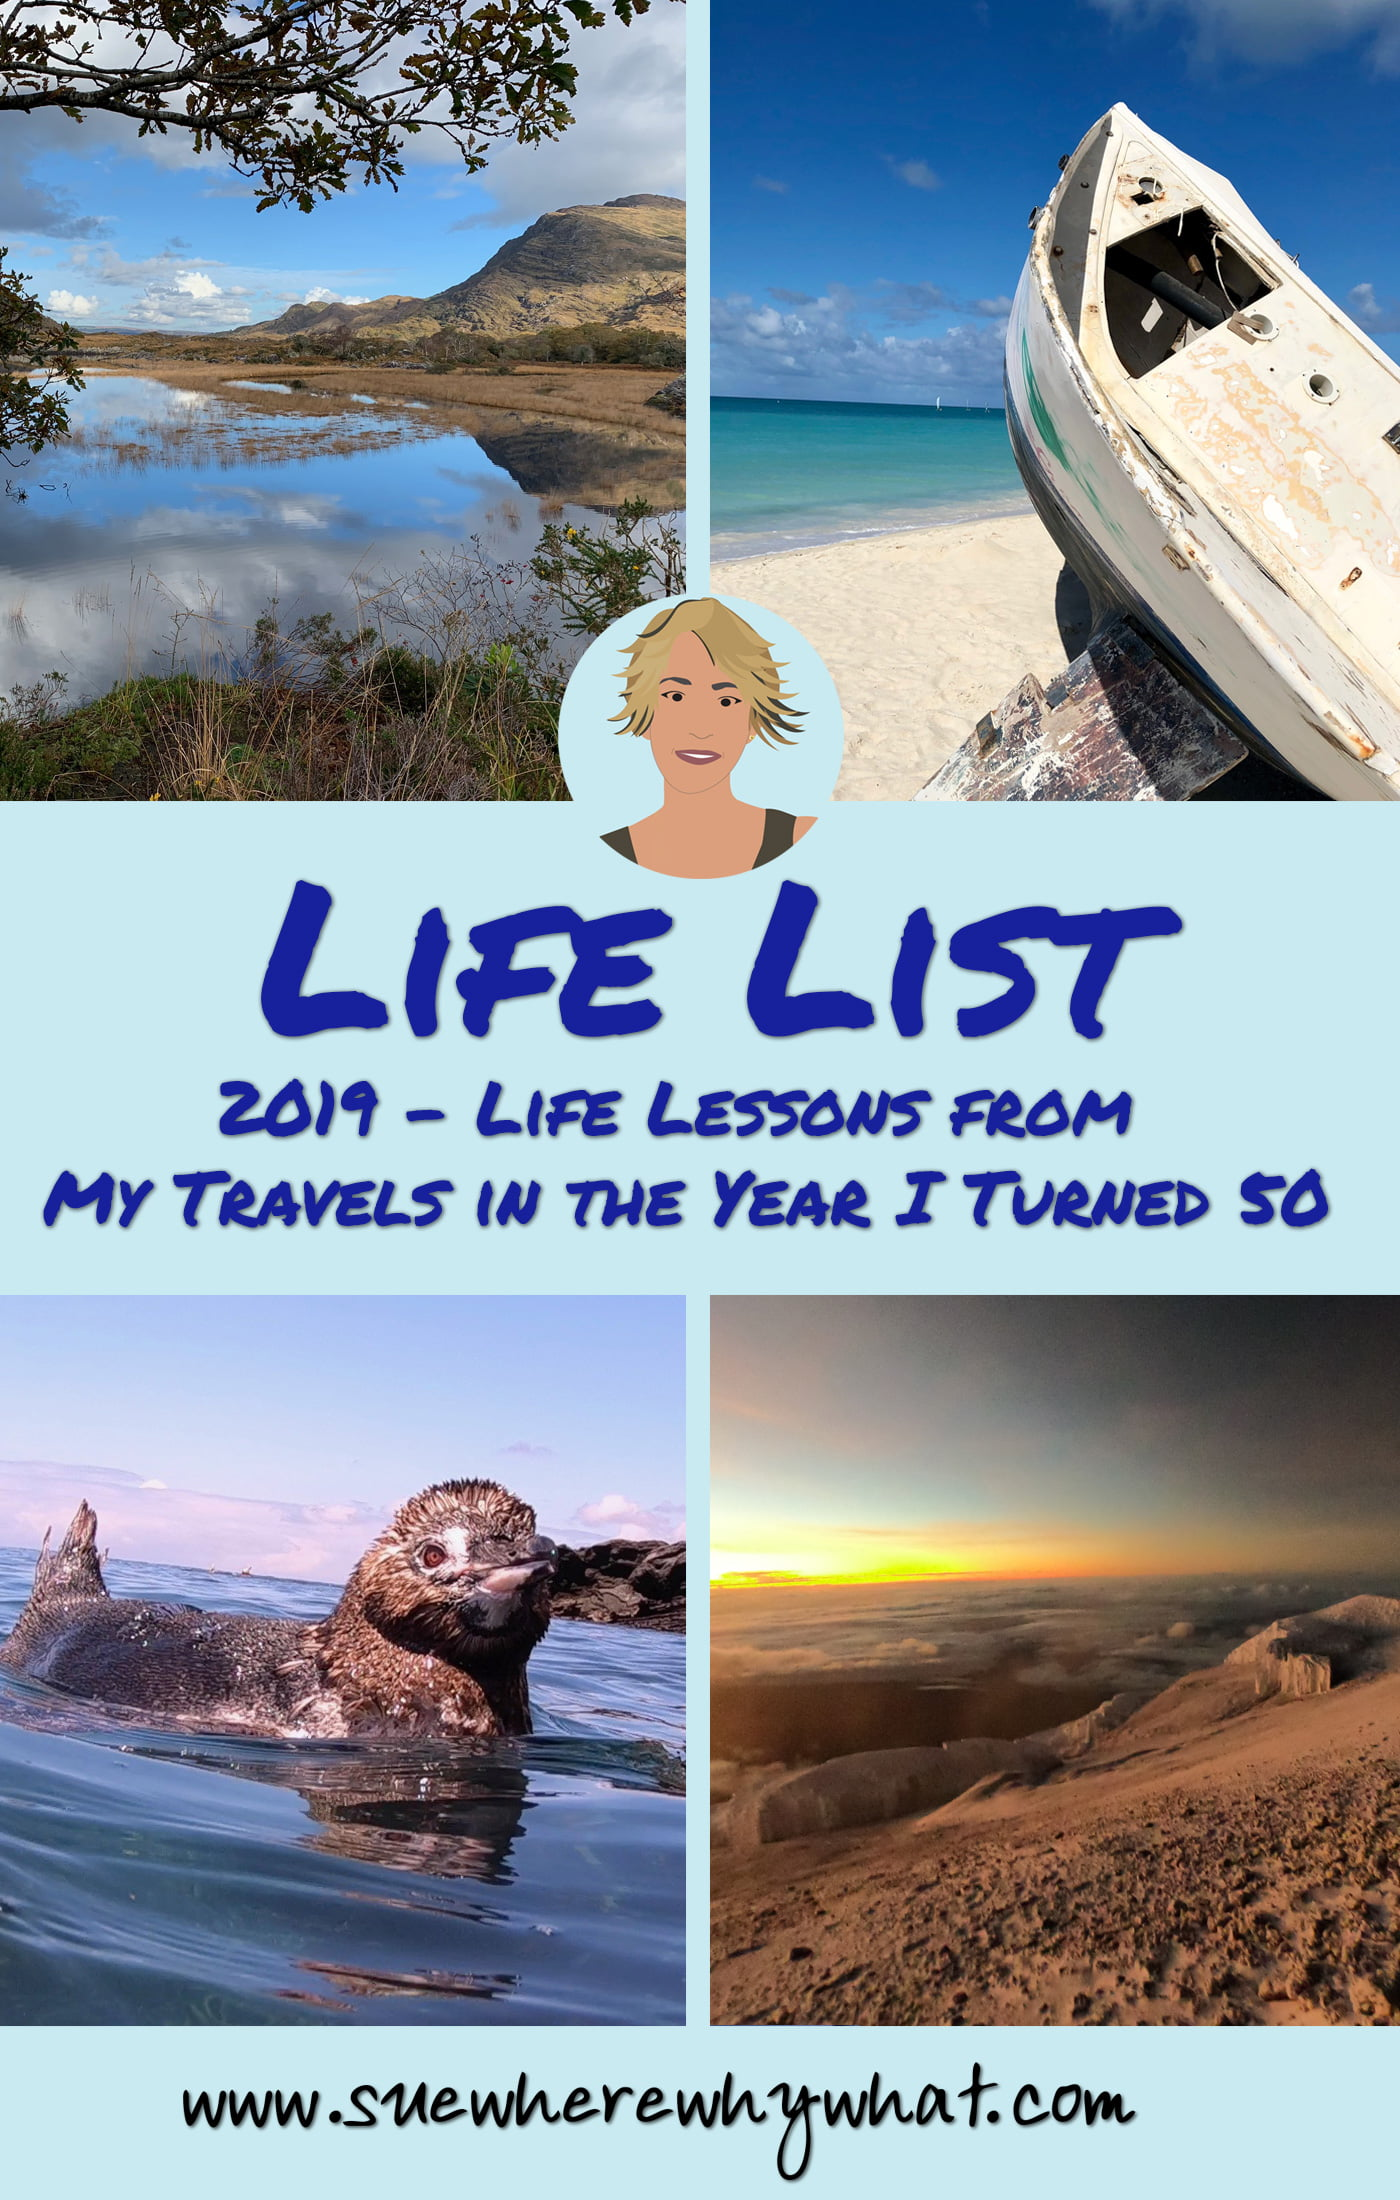 A review of travel experiences from 2019, the year I turned 50. Includes climbing Mount Kilimanjaro, Galapagos Islands, Buckingham Palace Tour, Tea at the Ritz, Zanzibar, hiking the Quilotoa Loop in Ecuador, Dominica, Martinique, Ireland & flying a glider! Creating your Life List (Bucket List) then look no further for inspiration!